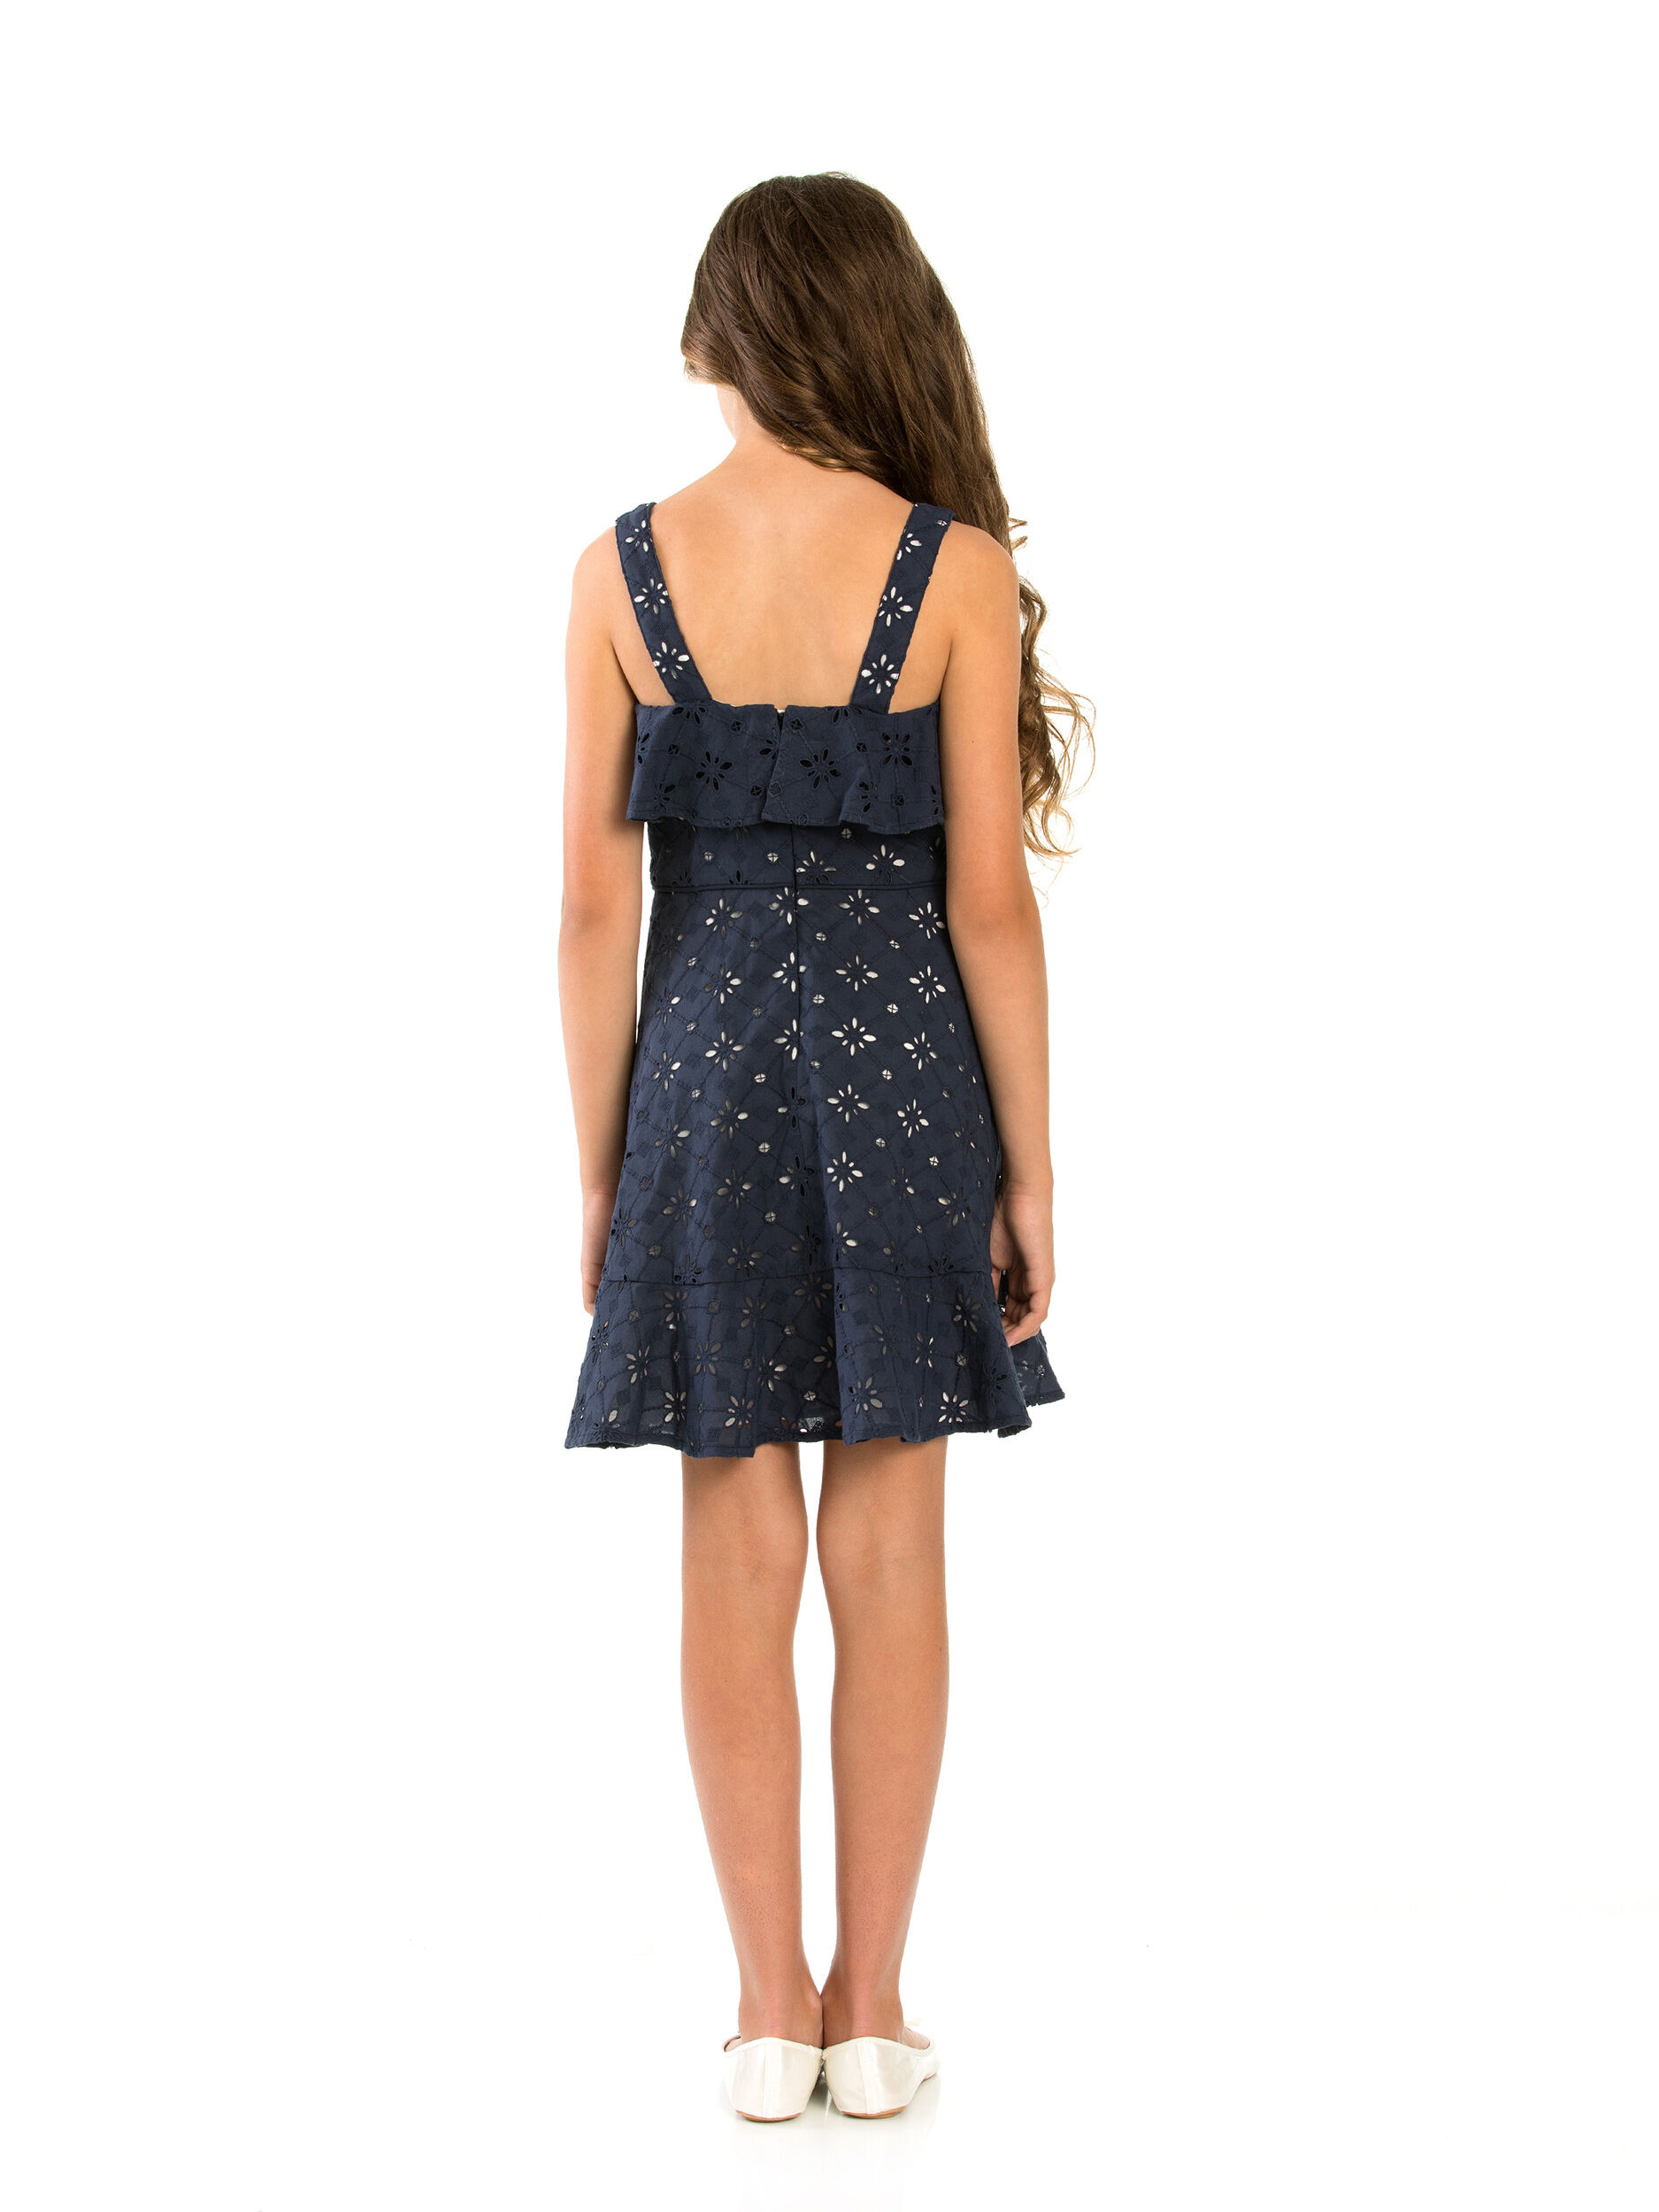 8-14 Girls Broderie Anglaise Dress